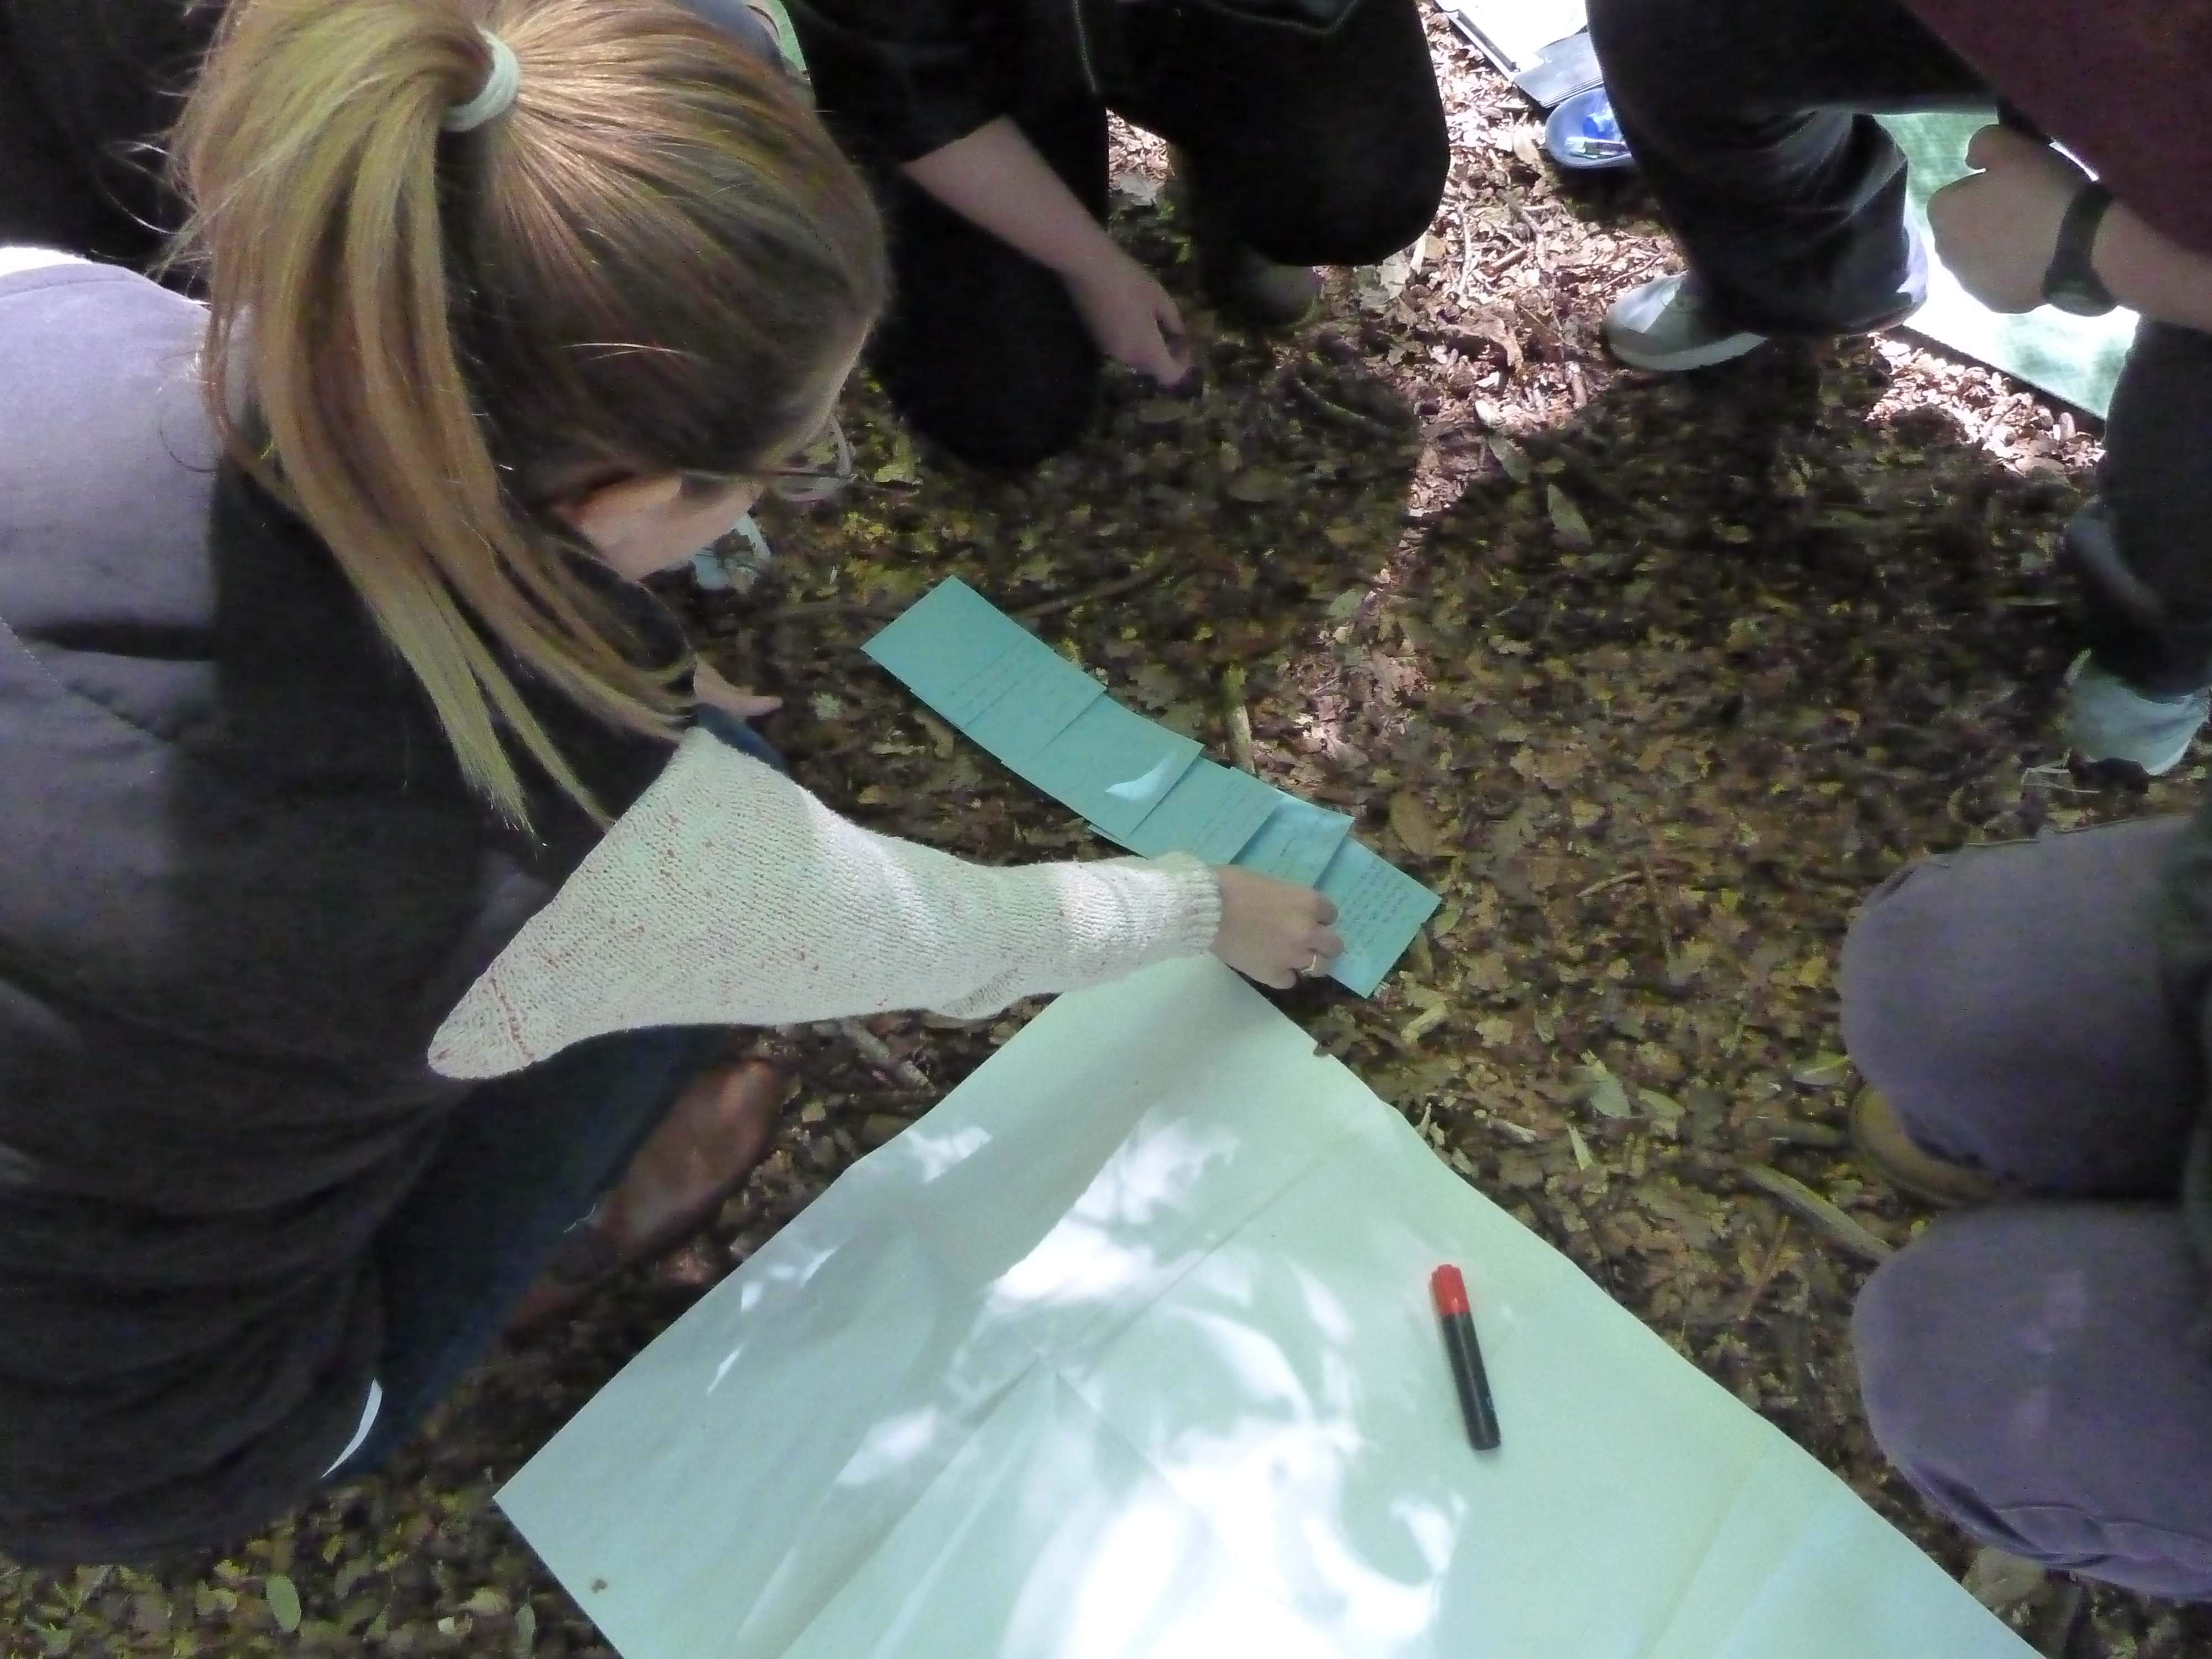 editing poems outdoors (literacy)